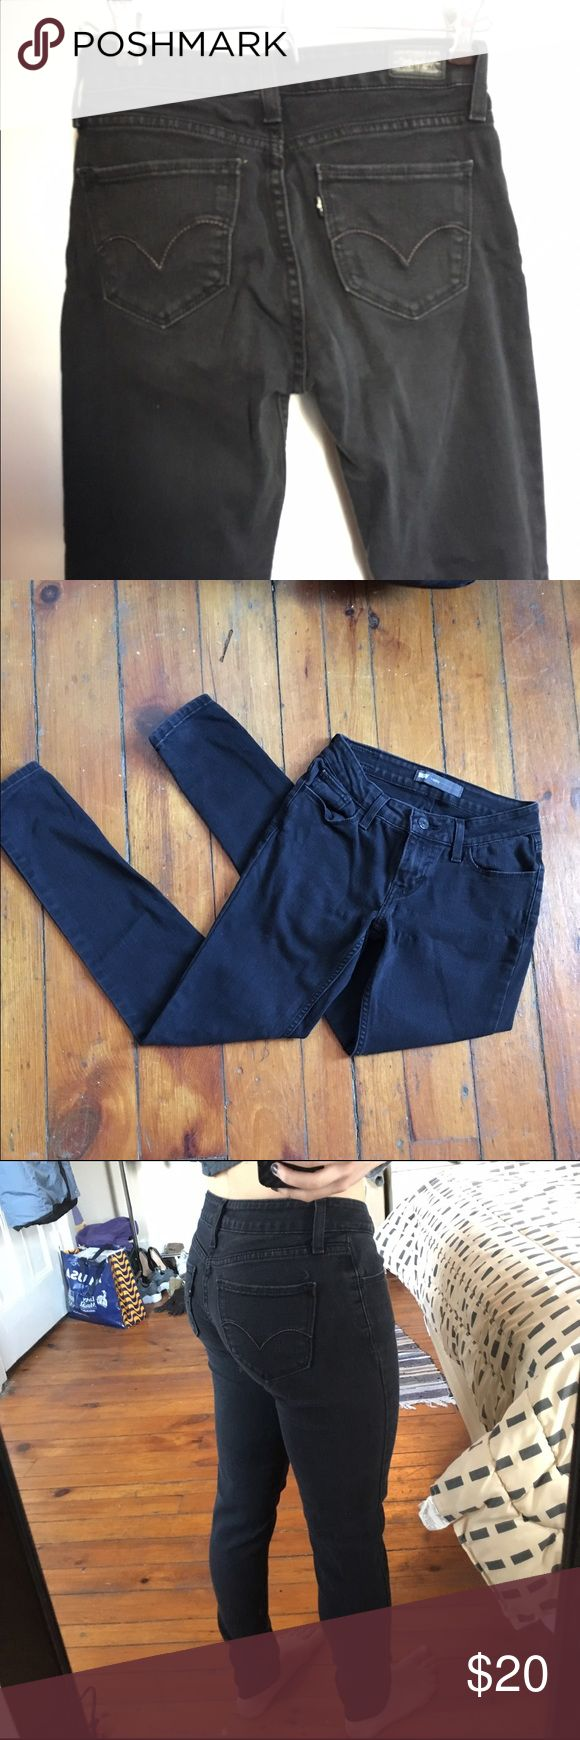 Black Levi Jeans These are faded black Levi's                                                             Size not labeled but it fits like a size 0                                   Stretchy material -- low rise                                                     Worn but in good condition                                                              Price is negotiable and I will consider trades                                                           Comment with any questions :) Levi's…